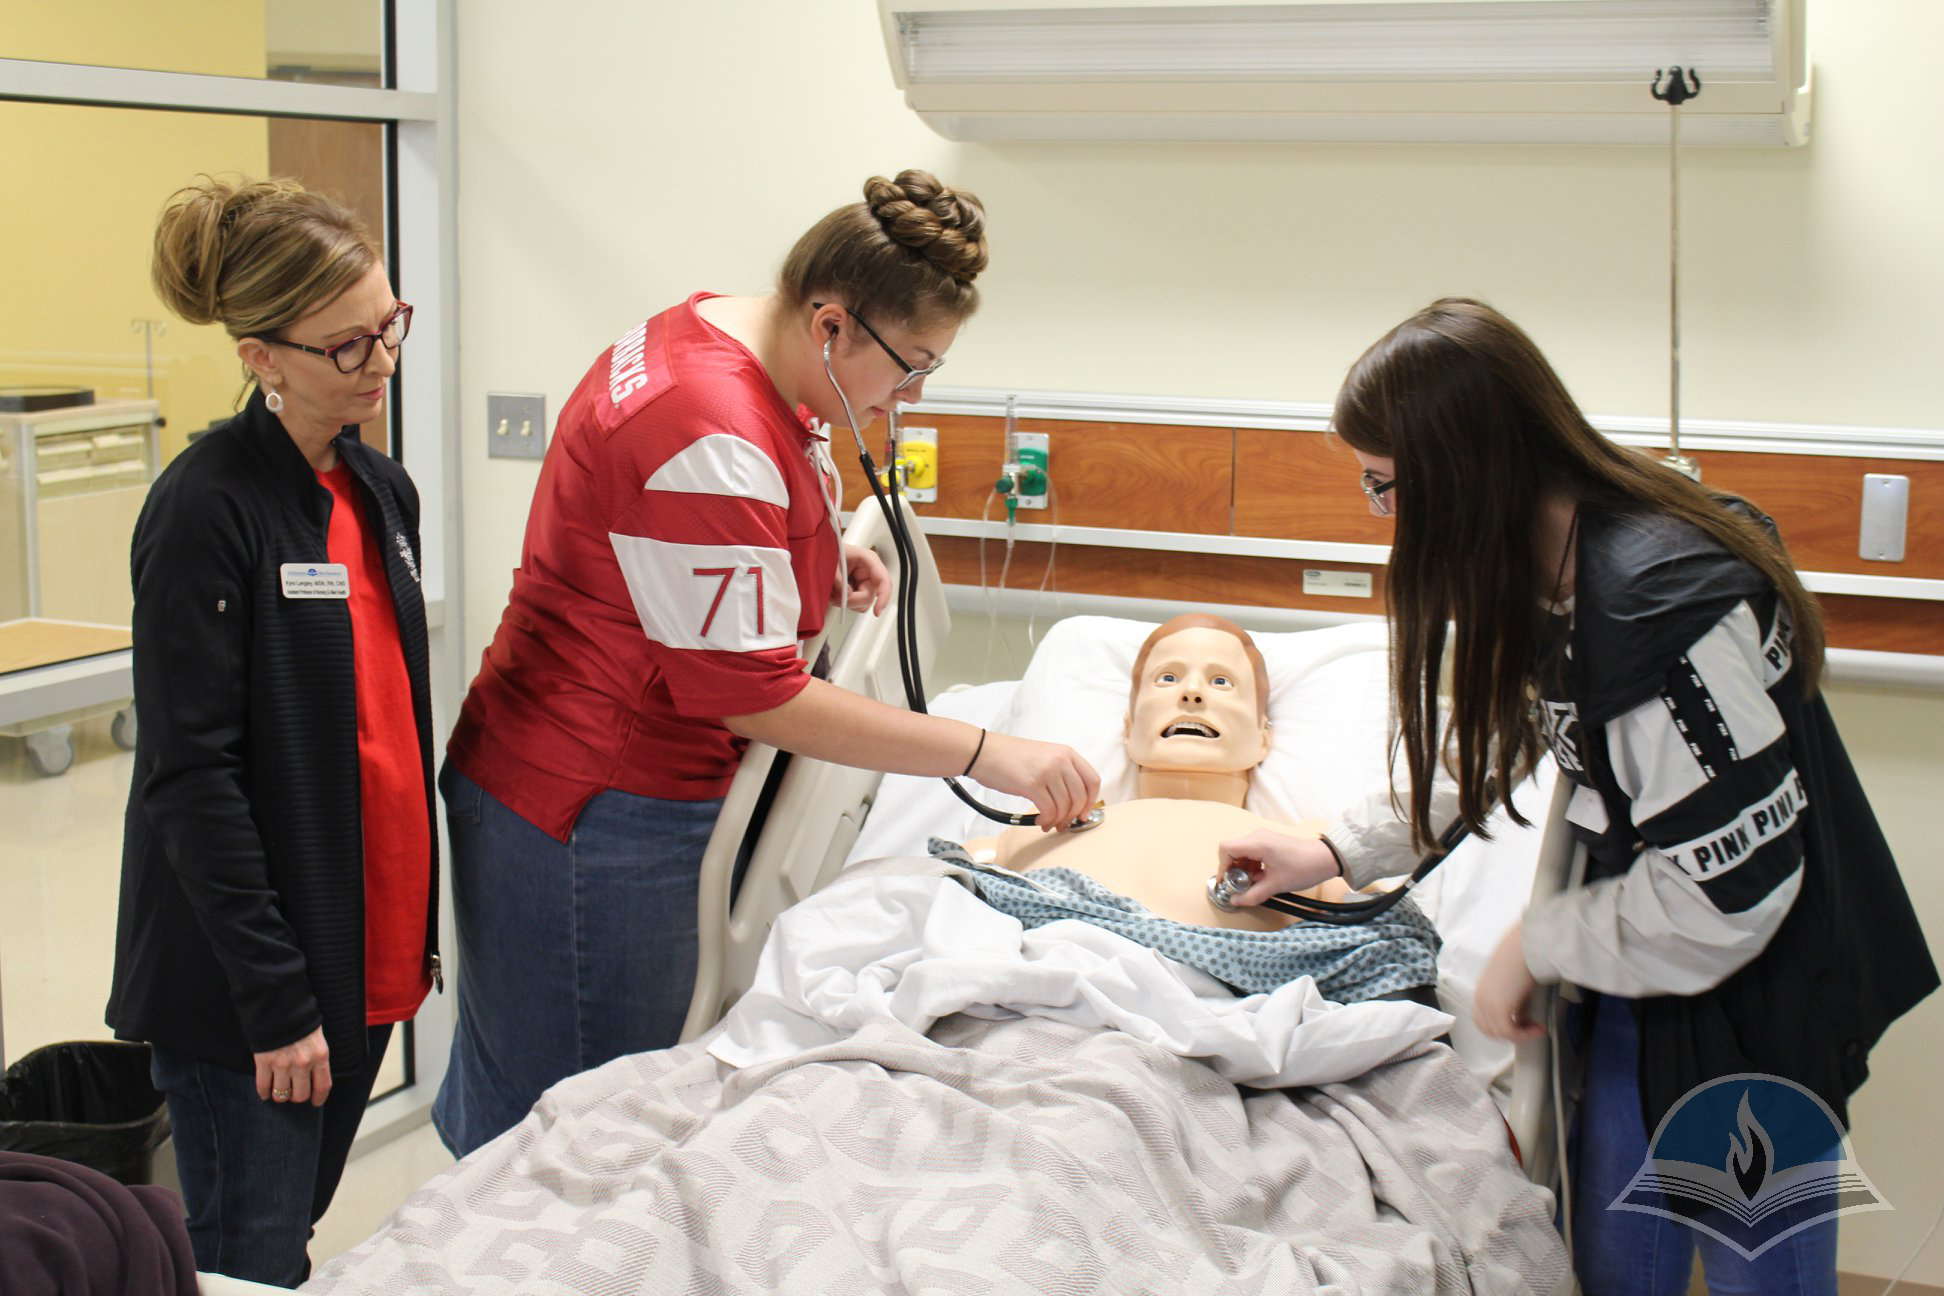 Arkansas Northeastern College STEM Camp for Girls participants learning to take vitals in a nursing simulation lab.